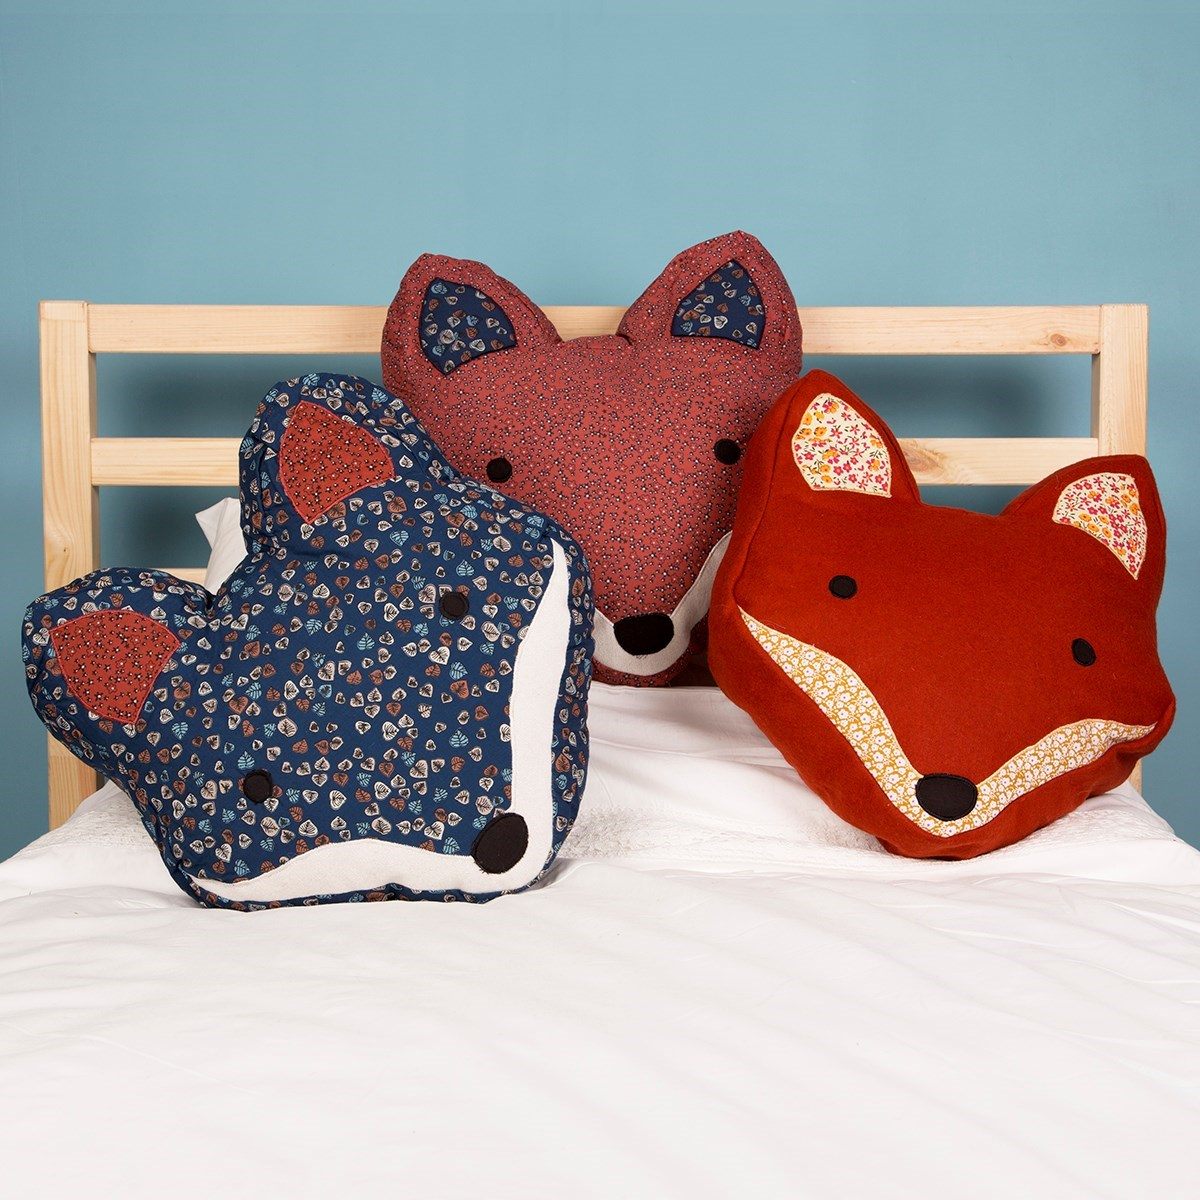 Paddy The Fox Cushion Alternative Image 1 Nice Design